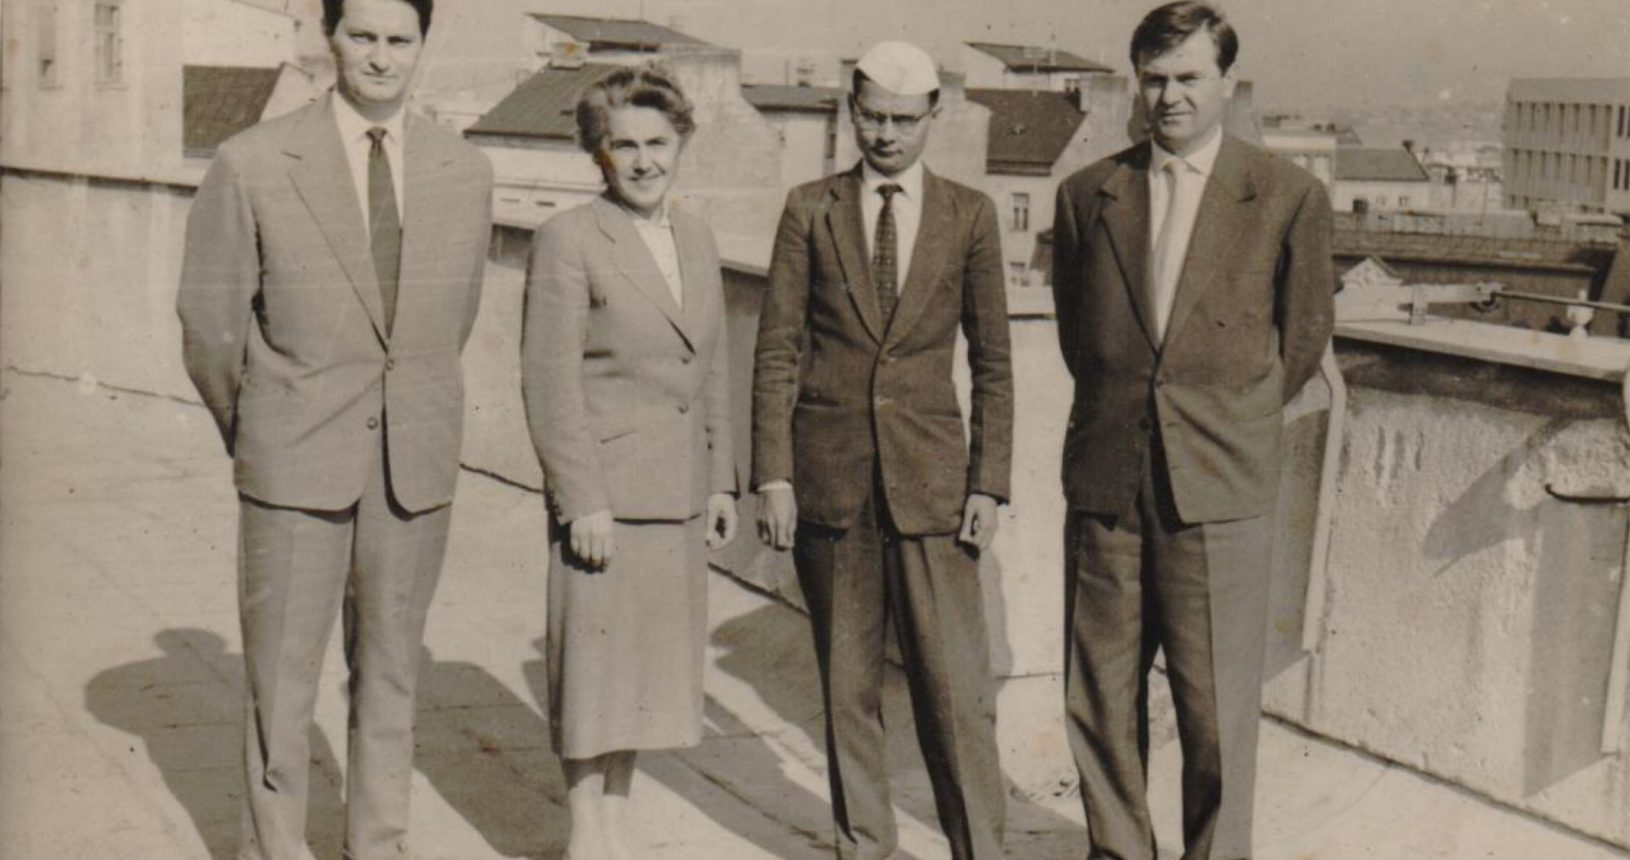 Mr. C. C. Bhagat with Mr. Zarko Mamula, Mrs. Olga Perin & Mr. Dragoljub Cicak in Yugoslavia